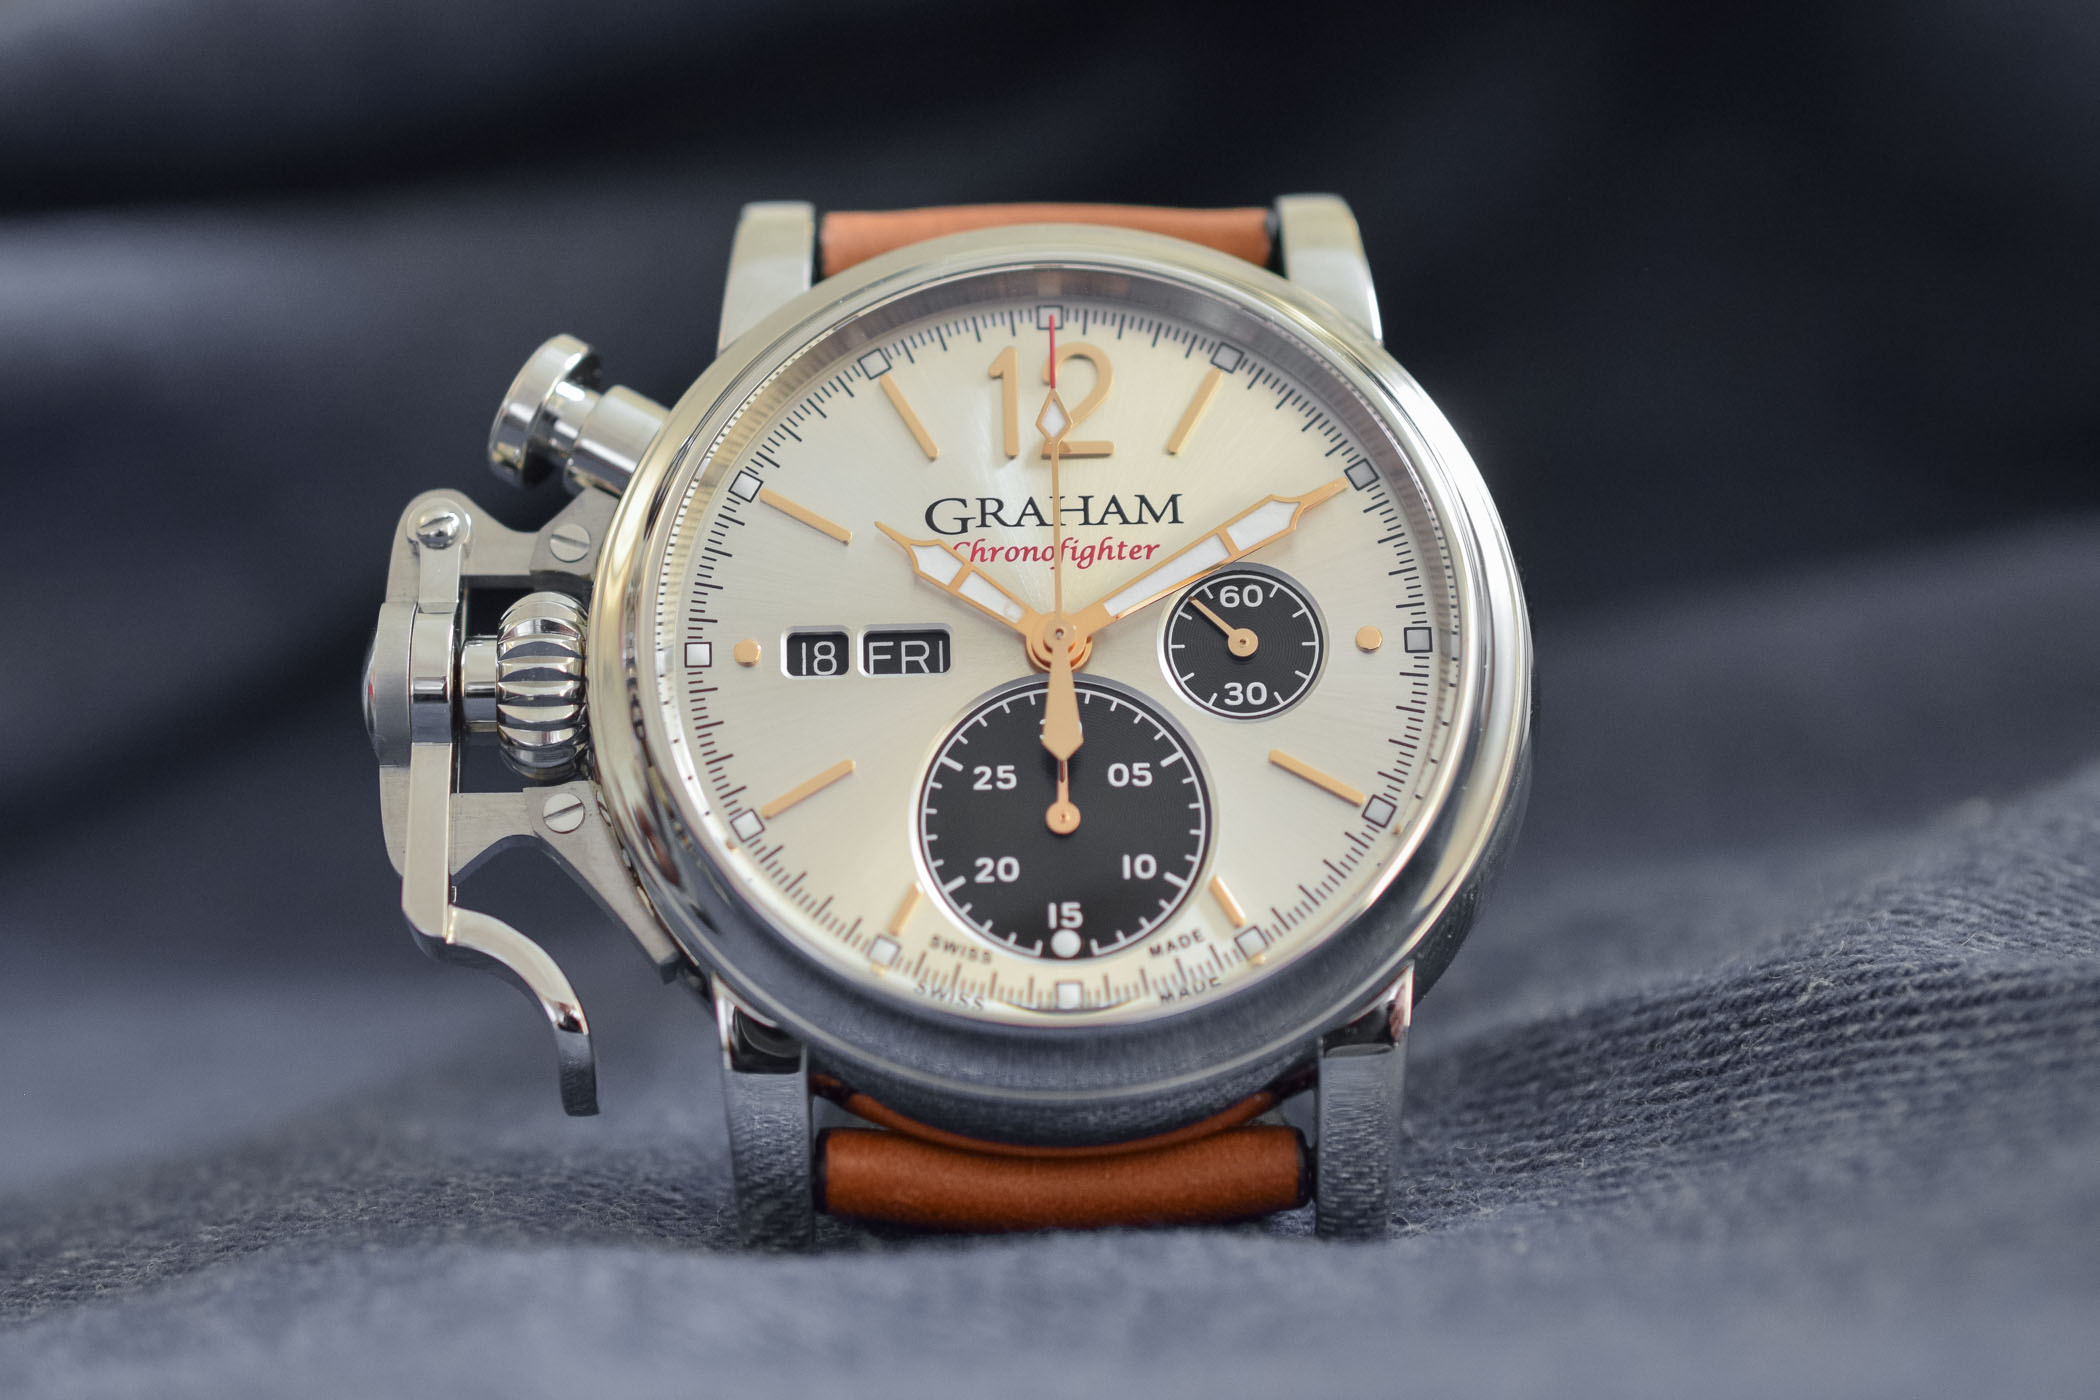 Vintage west german airforce chronograph watches